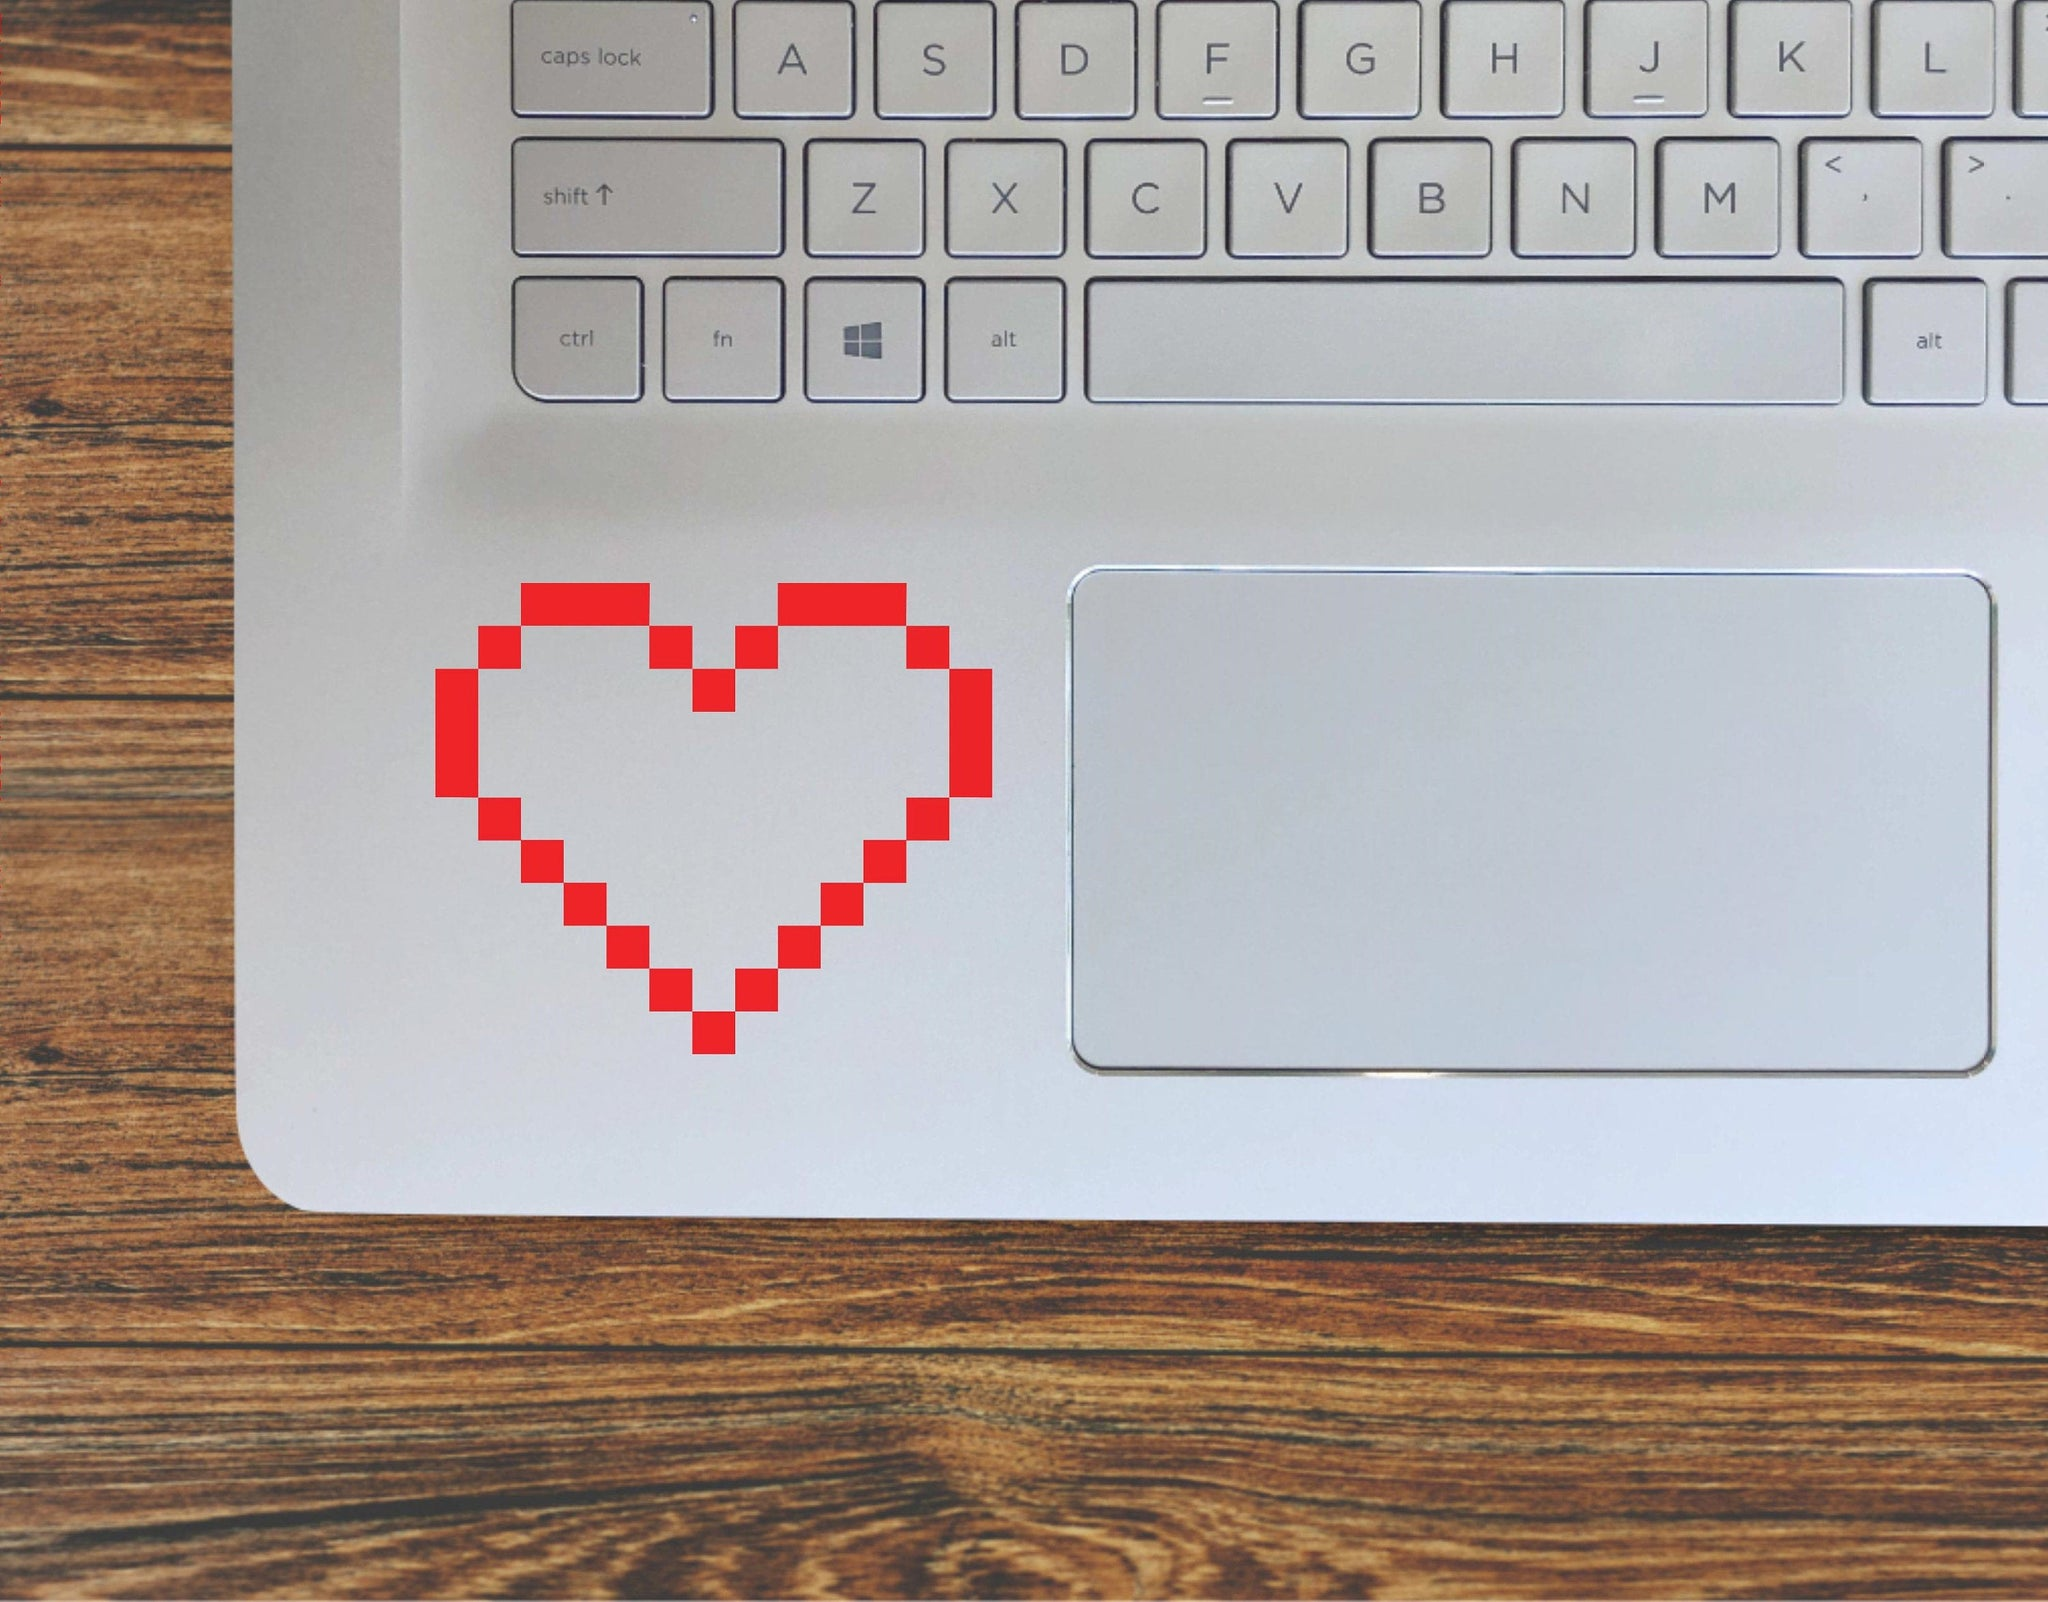 8 Bit Pixel Heart Retro Video Game Heart Life Vinyl Decal Sticker